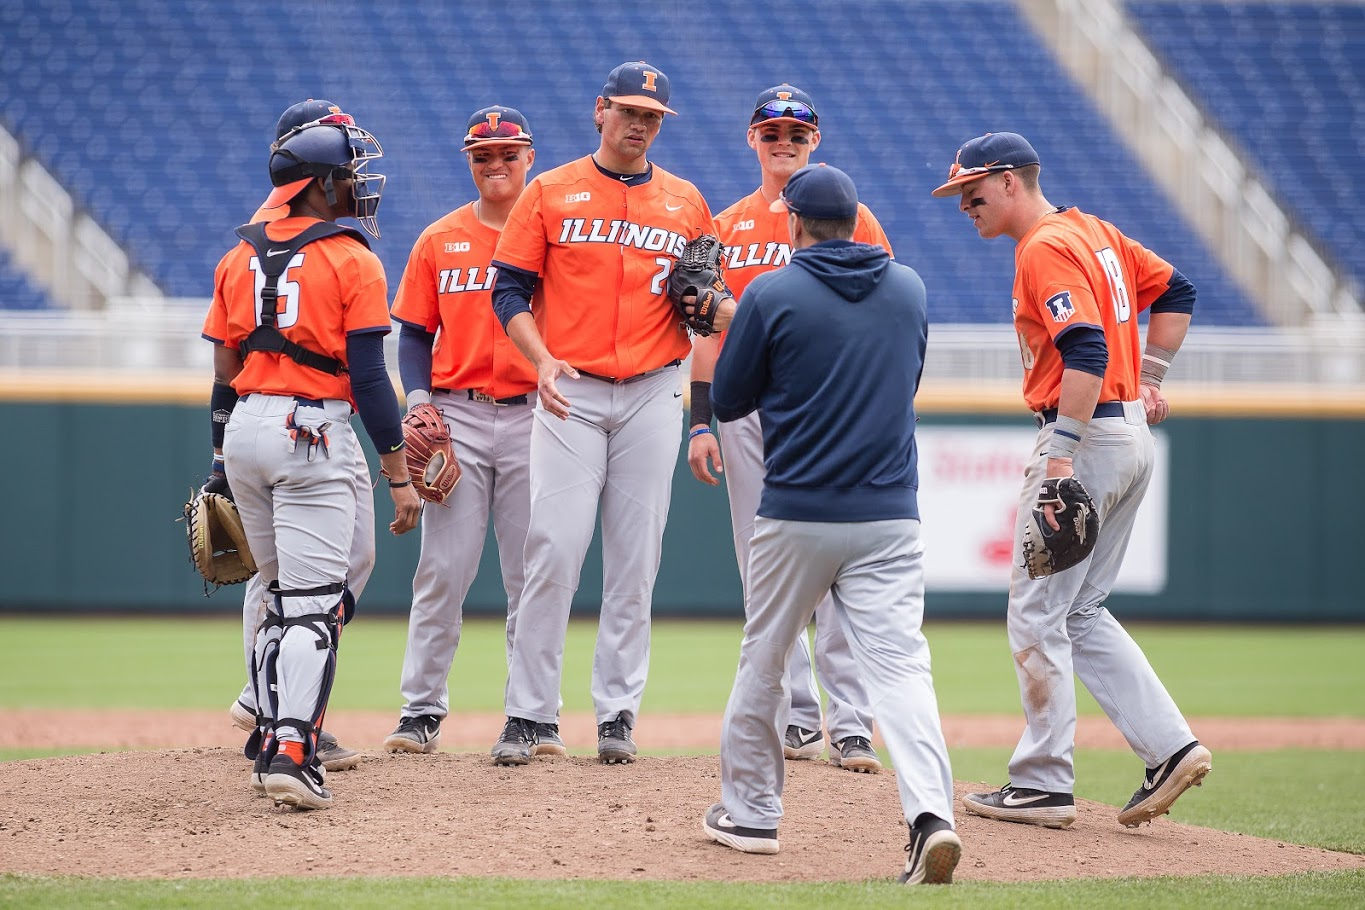 Illinois closing pitcher Garrett Acton (26) gets a mound visit from assistant coach Drew Dickinson during the game against Michigan in the Big Ten Tournament at TD Ameritrade Park on Thursday, May 23, 2019. The Illini lost 5-4.